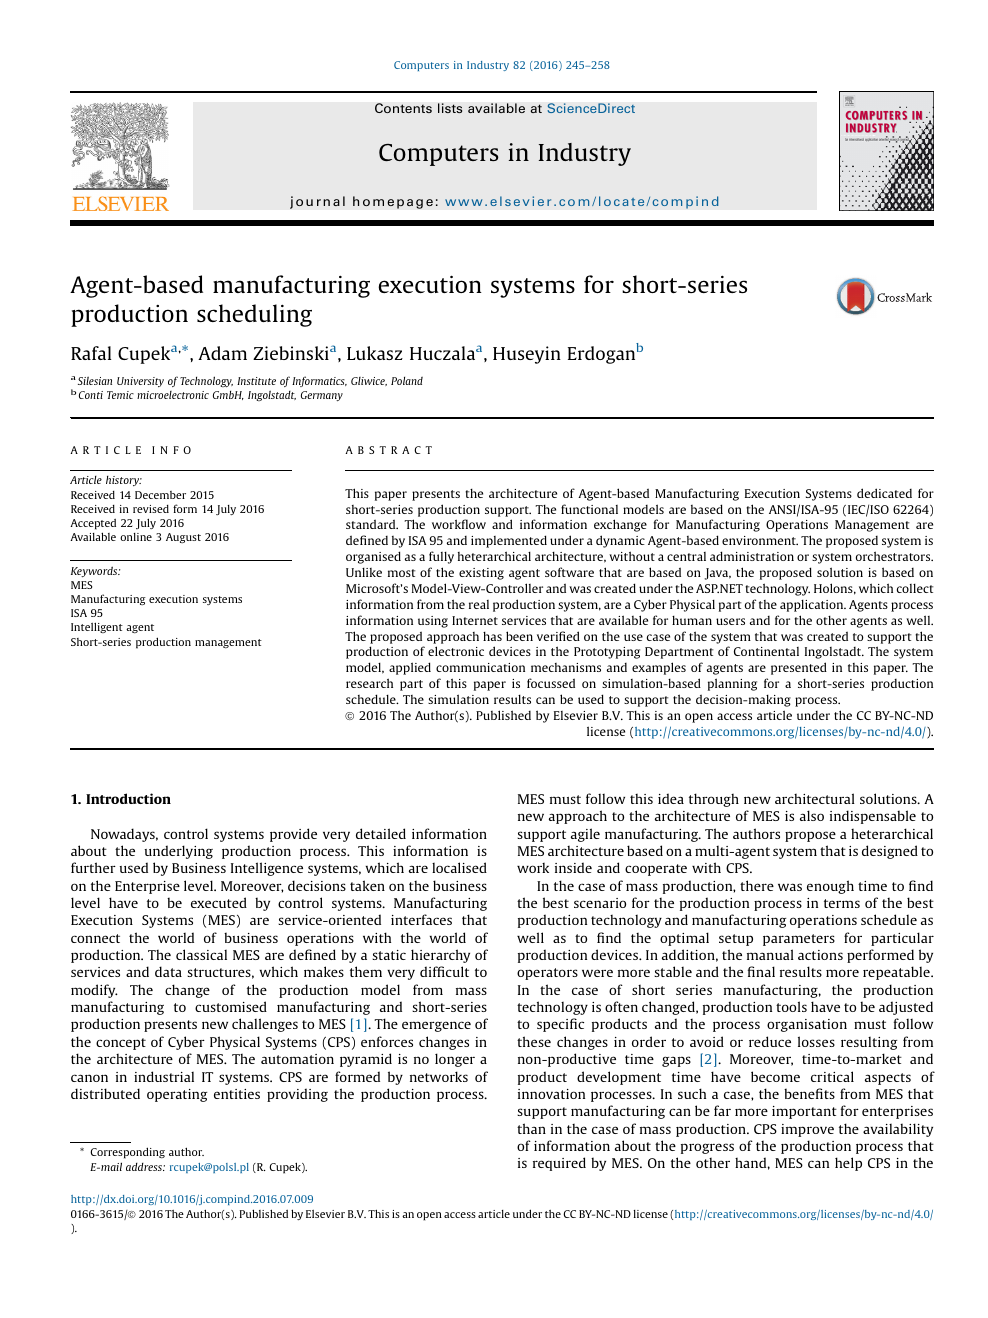 Agent-based manufacturing execution systems for short-series